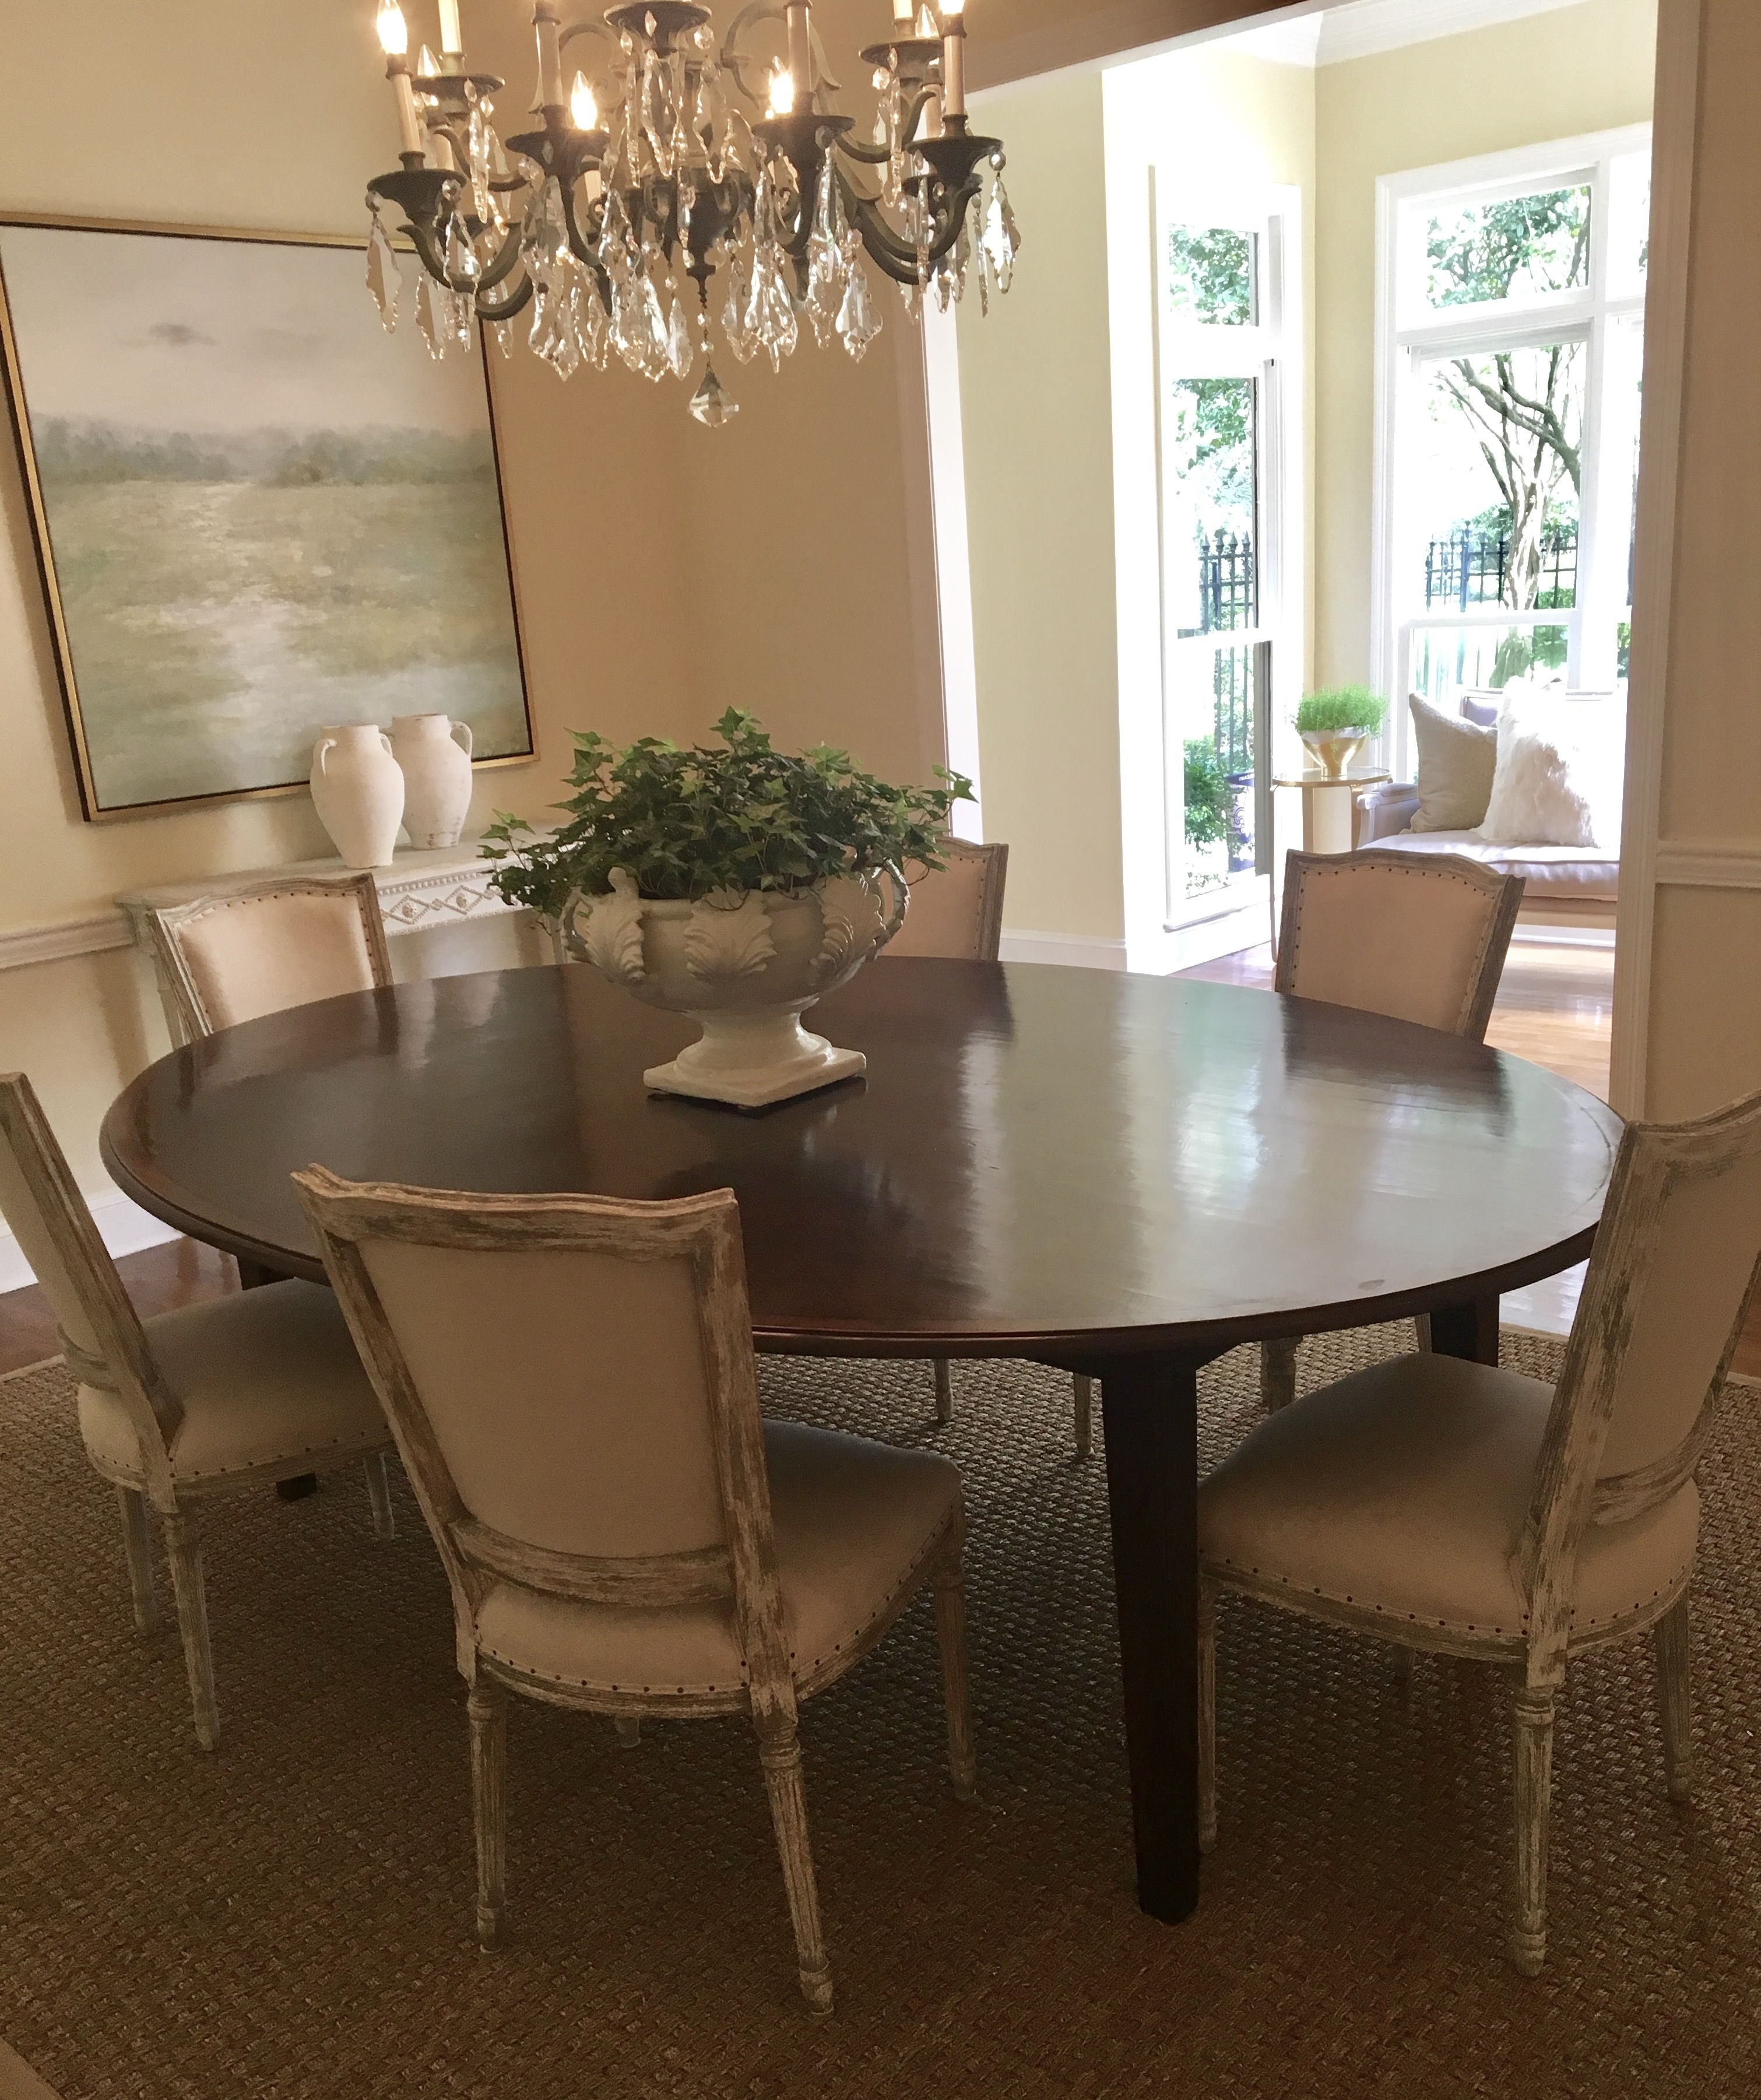 Home Staging Dining Room Table: Pin By ASJ Interiors & Home Staging On 115 Windrush